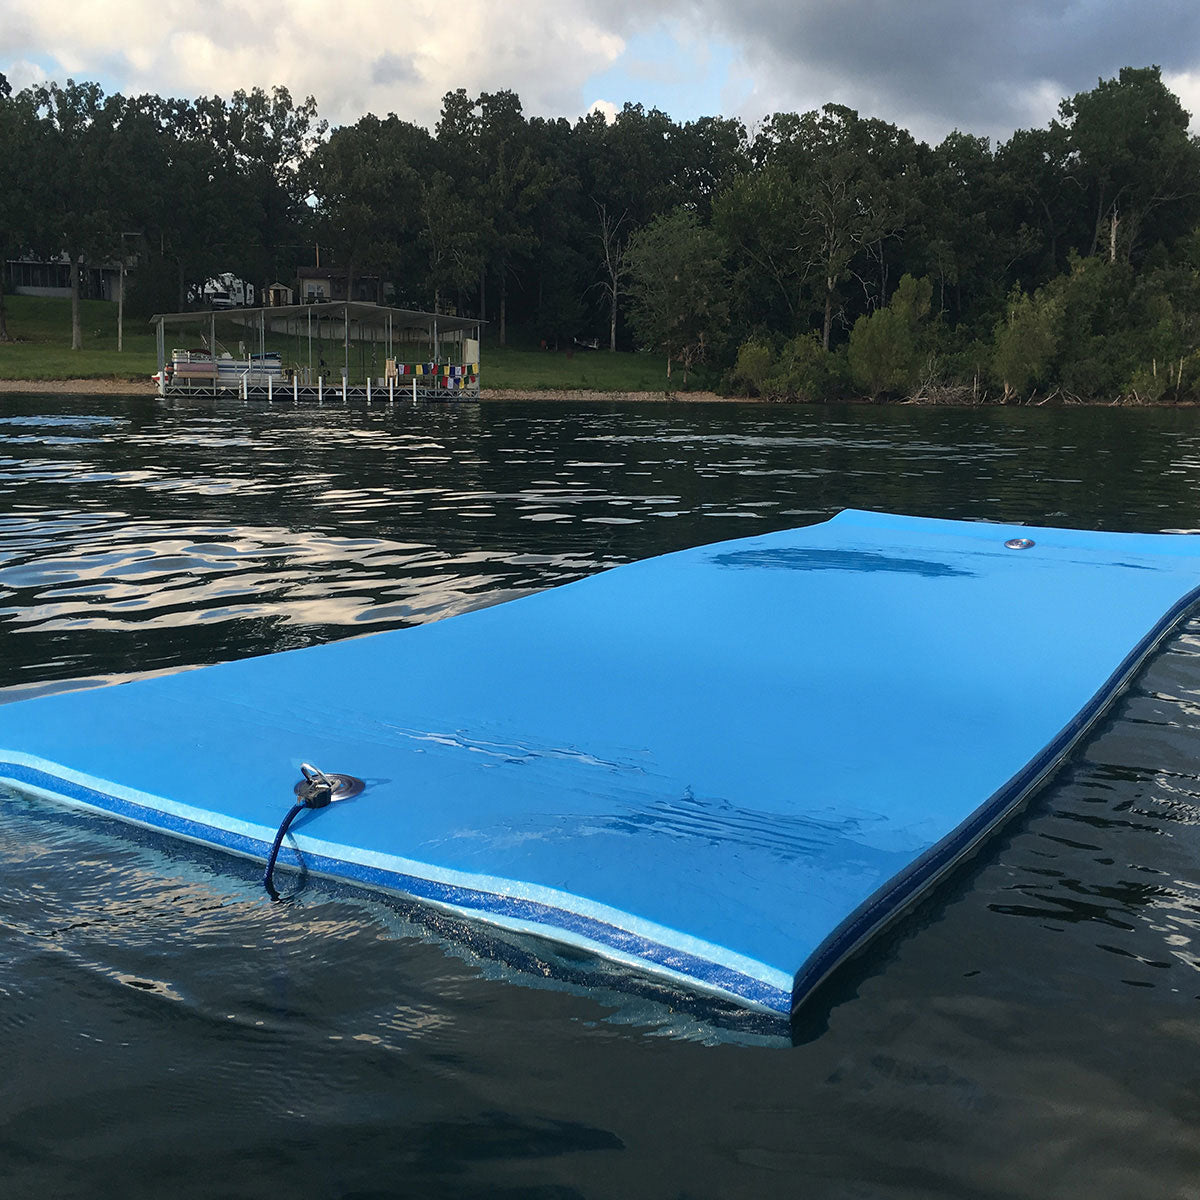 FloatDaddy Lake Mats